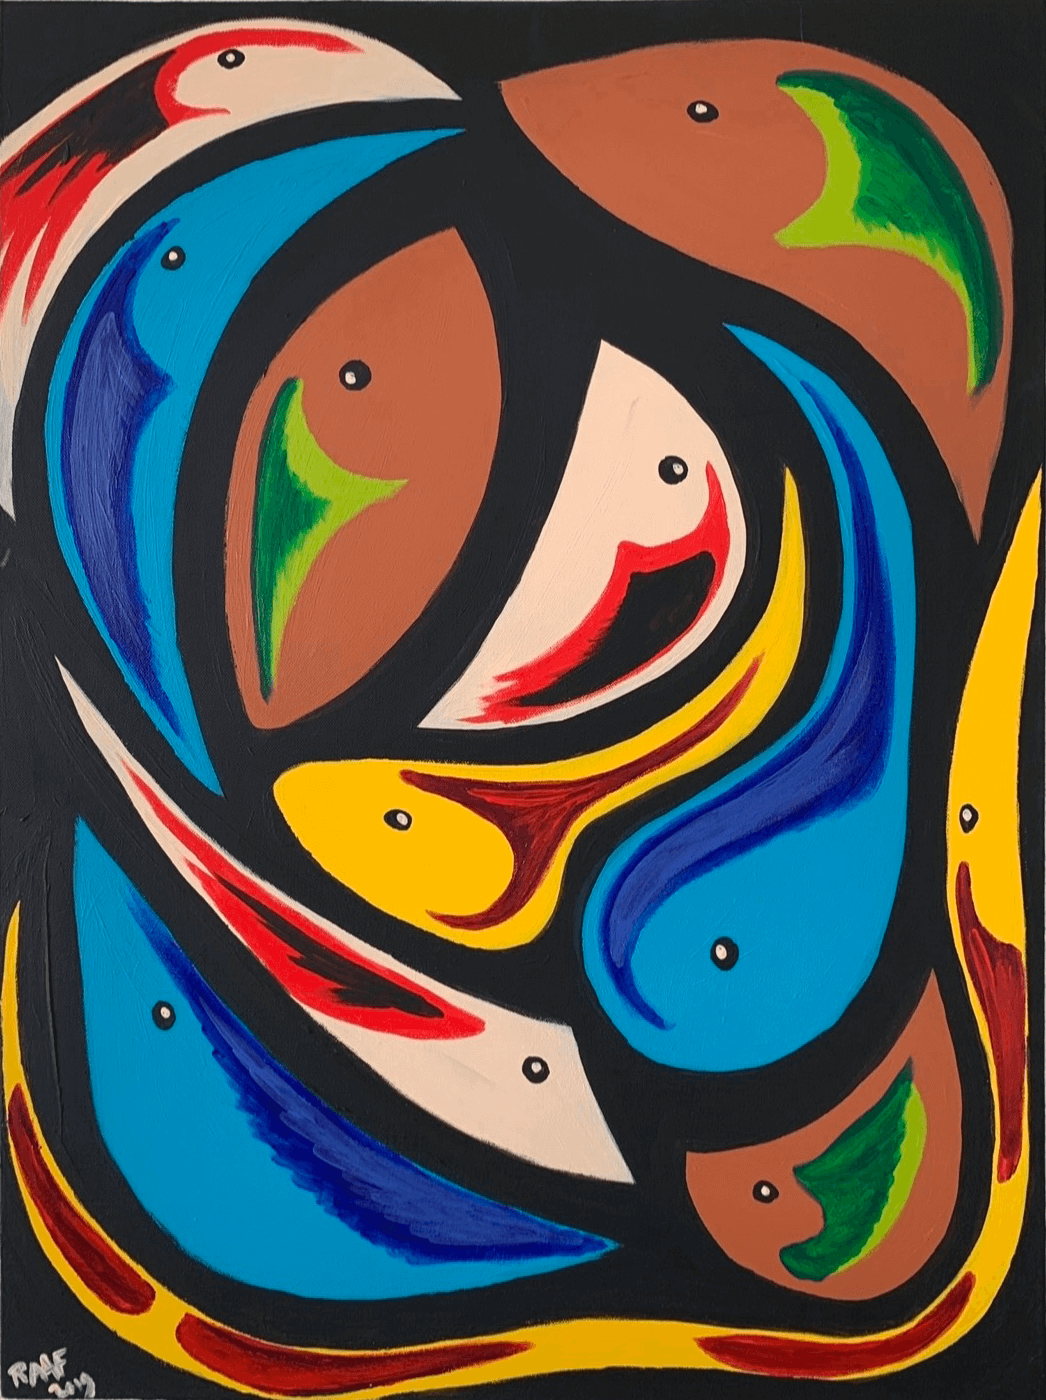 abstract-painting-with-fish-blue-brown-yellow-red-by-raafpaintings